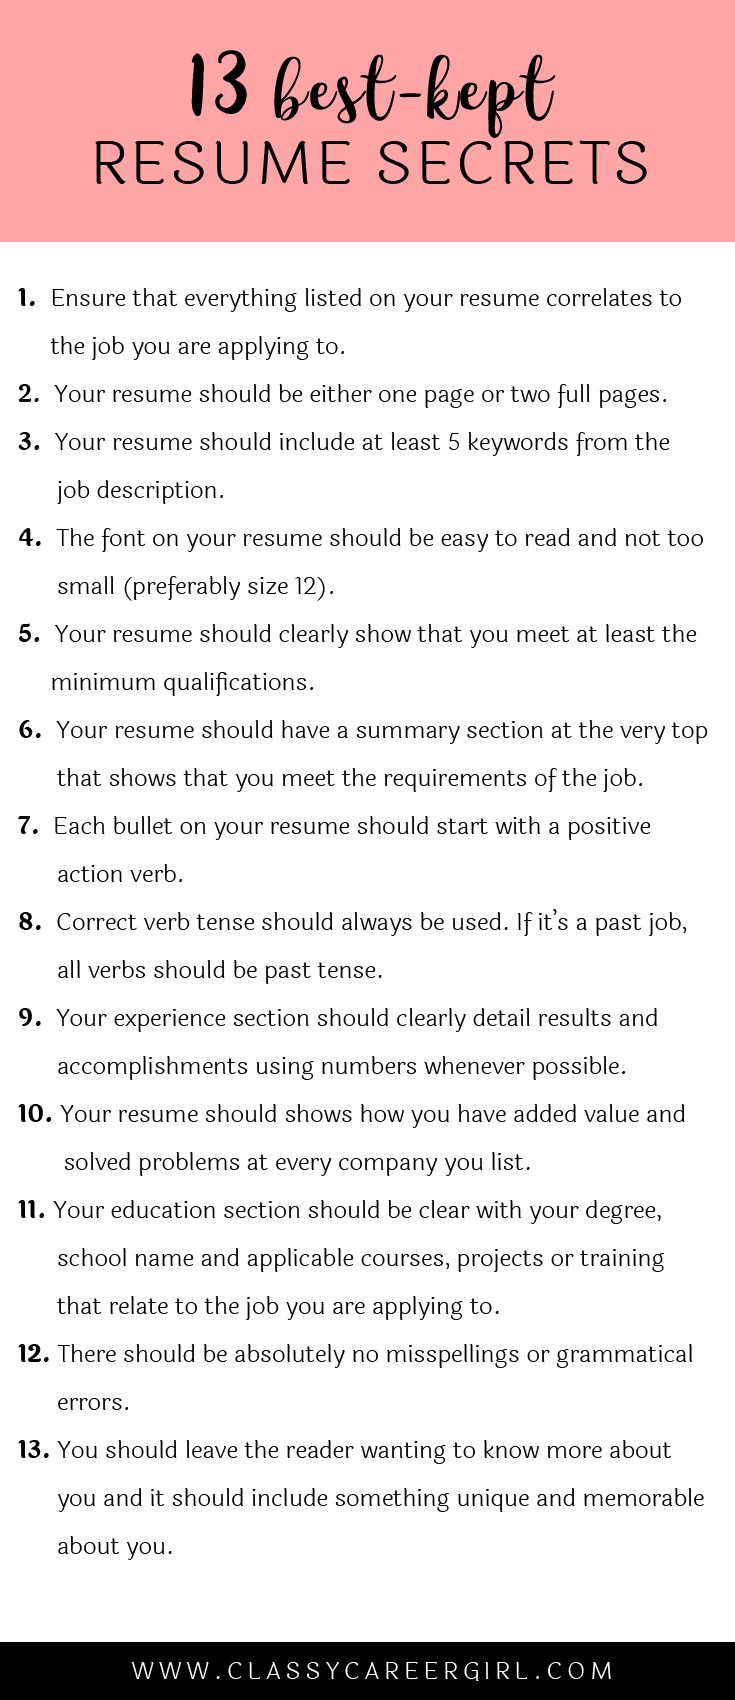 Opposenewapstandardsus  Winning  Ideas About Resume On Pinterest  Cv Format Resume Cv And  With Heavenly Some Hiring Managers Will Toss Your Resume Out If You Dont Know These  With Amusing Sales Resumes Examples Also Pta Resume In Addition Resume For Customer Service Representative And Sample Resume For Receptionist As Well As Difference Between Resume And Cover Letter Additionally Director Of Marketing Resume From Pinterestcom With Opposenewapstandardsus  Heavenly  Ideas About Resume On Pinterest  Cv Format Resume Cv And  With Amusing Some Hiring Managers Will Toss Your Resume Out If You Dont Know These  And Winning Sales Resumes Examples Also Pta Resume In Addition Resume For Customer Service Representative From Pinterestcom